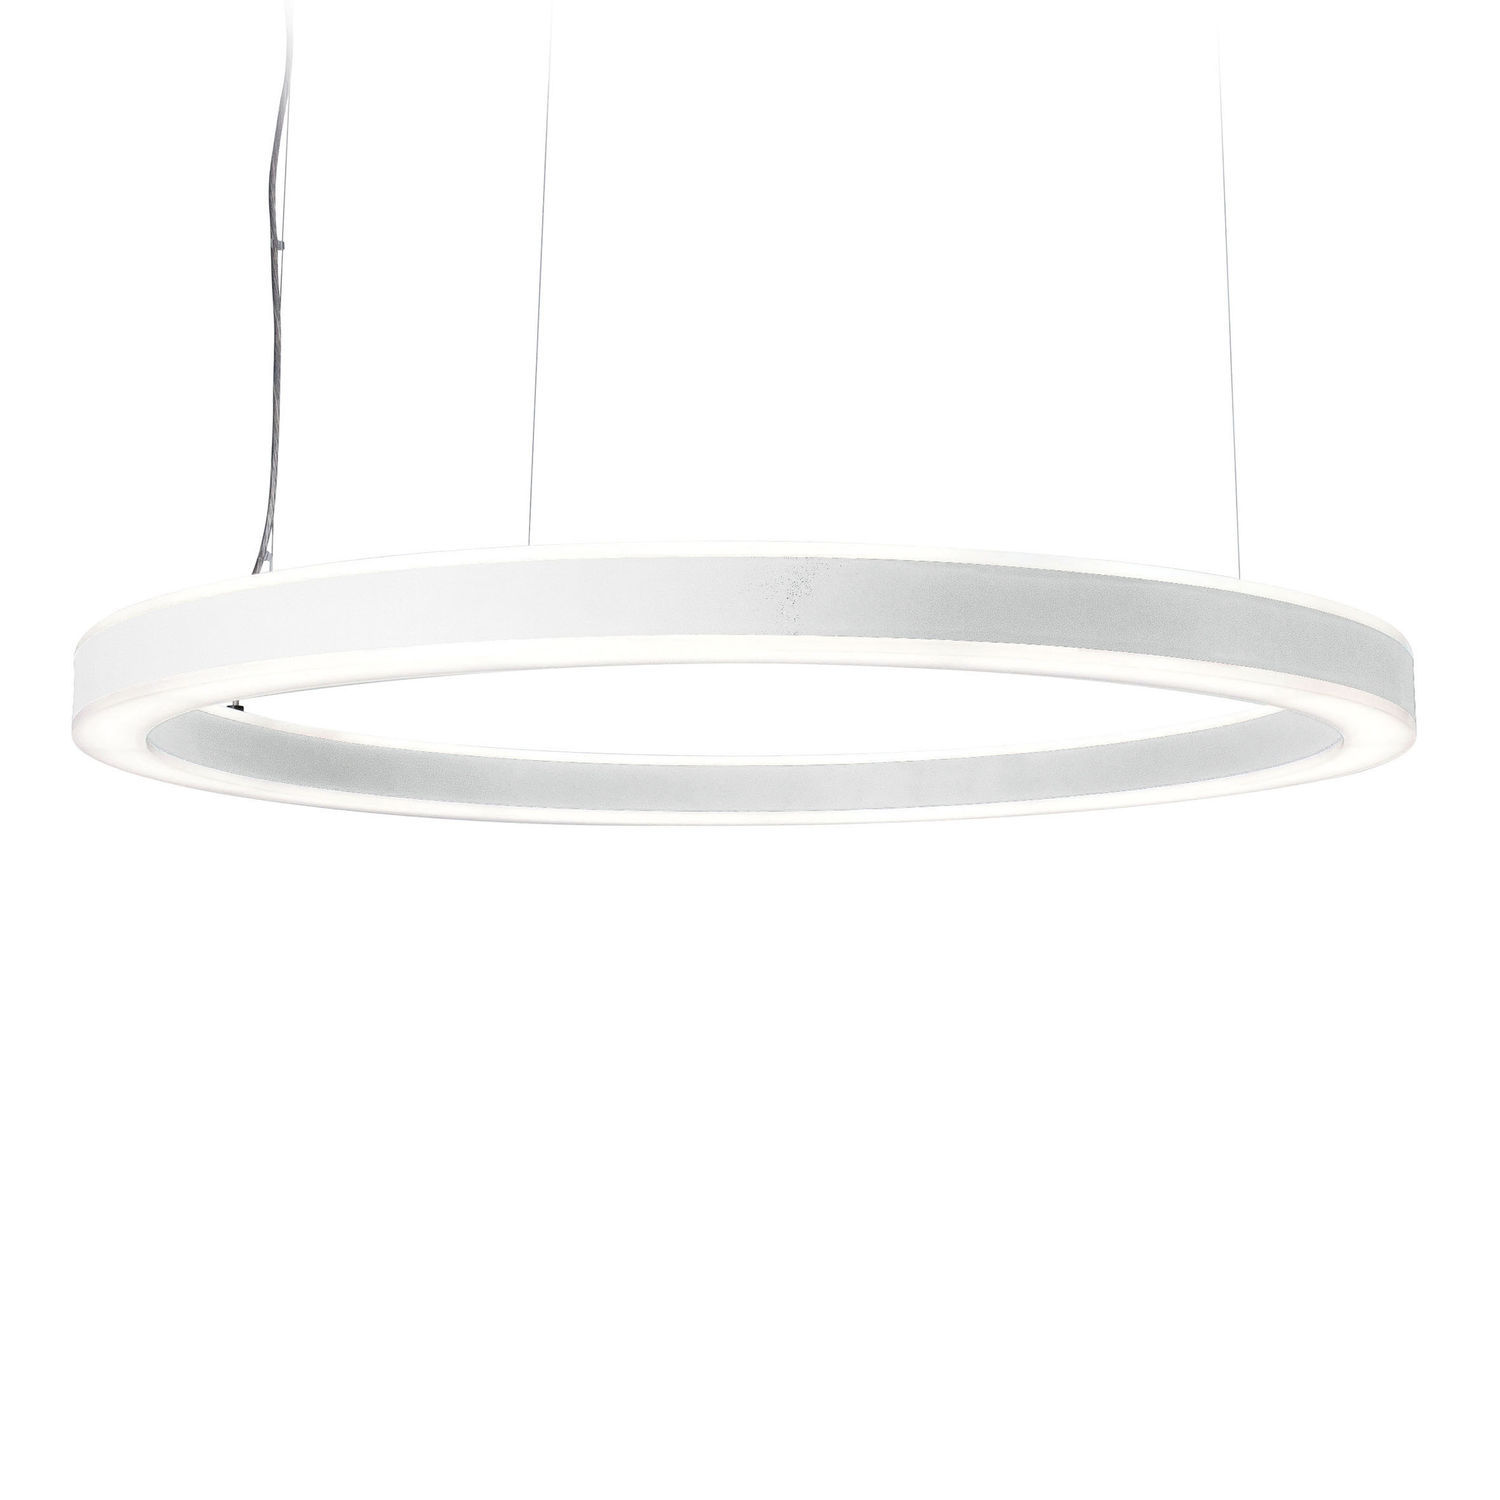 ... Hanging Light Fixture / LED / Round / Aluminum HALO Planlicht ...